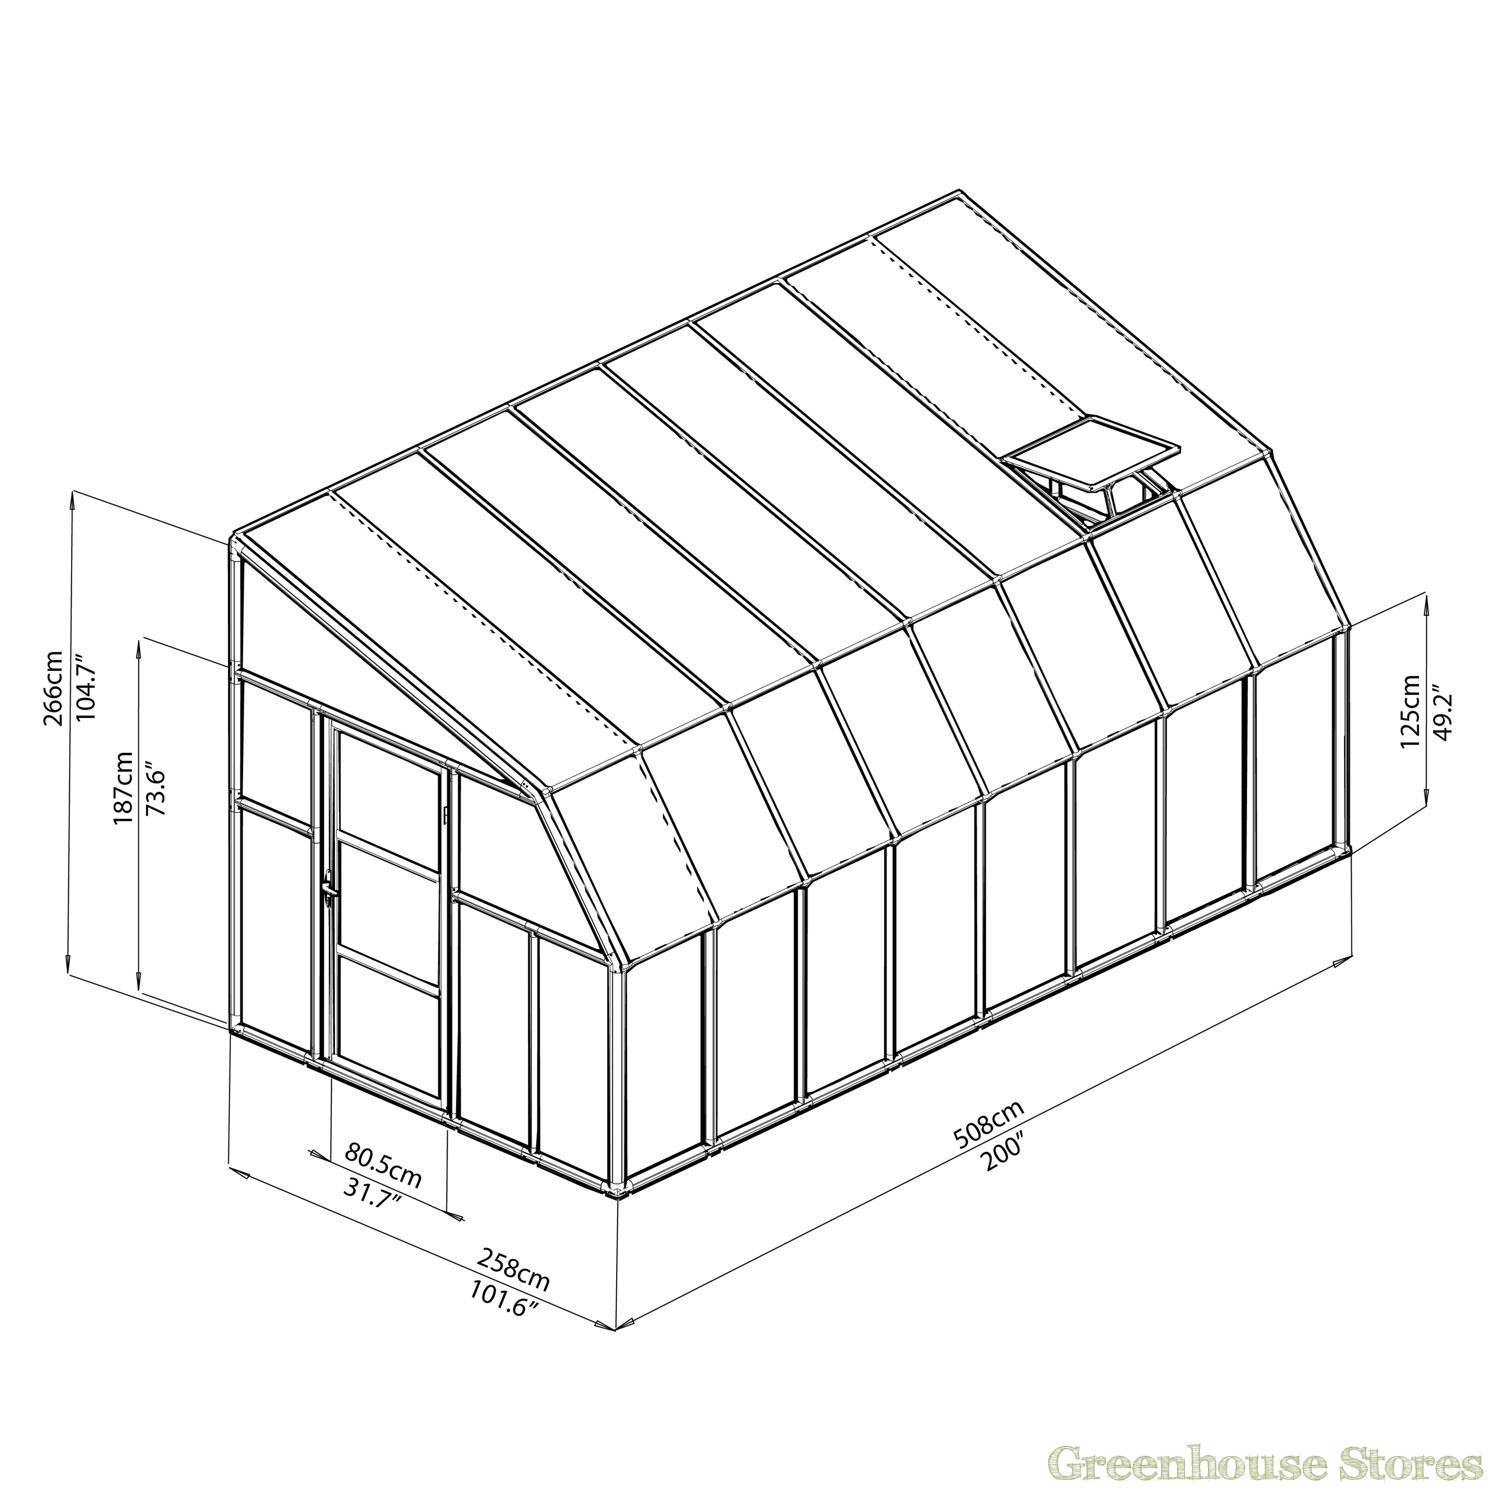 1500x1500 Rion Sun Room 8x16 Lean To Greenhouse Polycarbonate